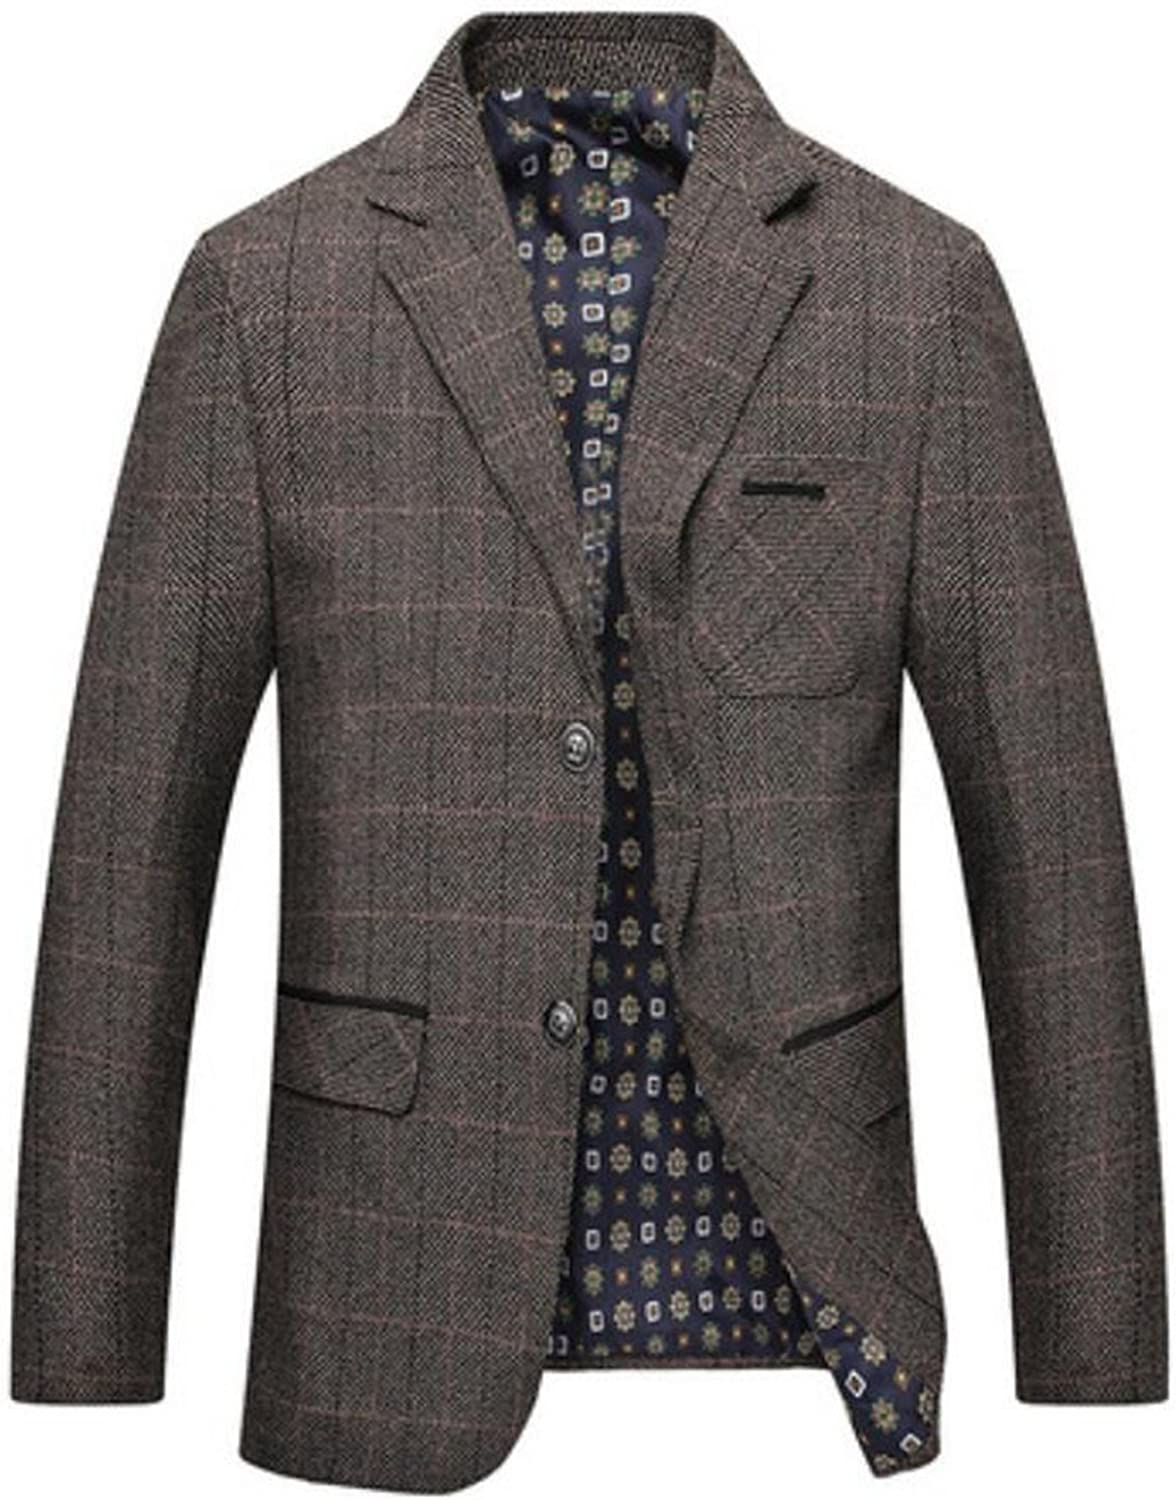 81289e5089dbc9 KLJR-Men Slim Slim Slim Fit Plaid Two Button Casual Notch Lapel Bussiness  Suit Coat Blazer 63a2f1